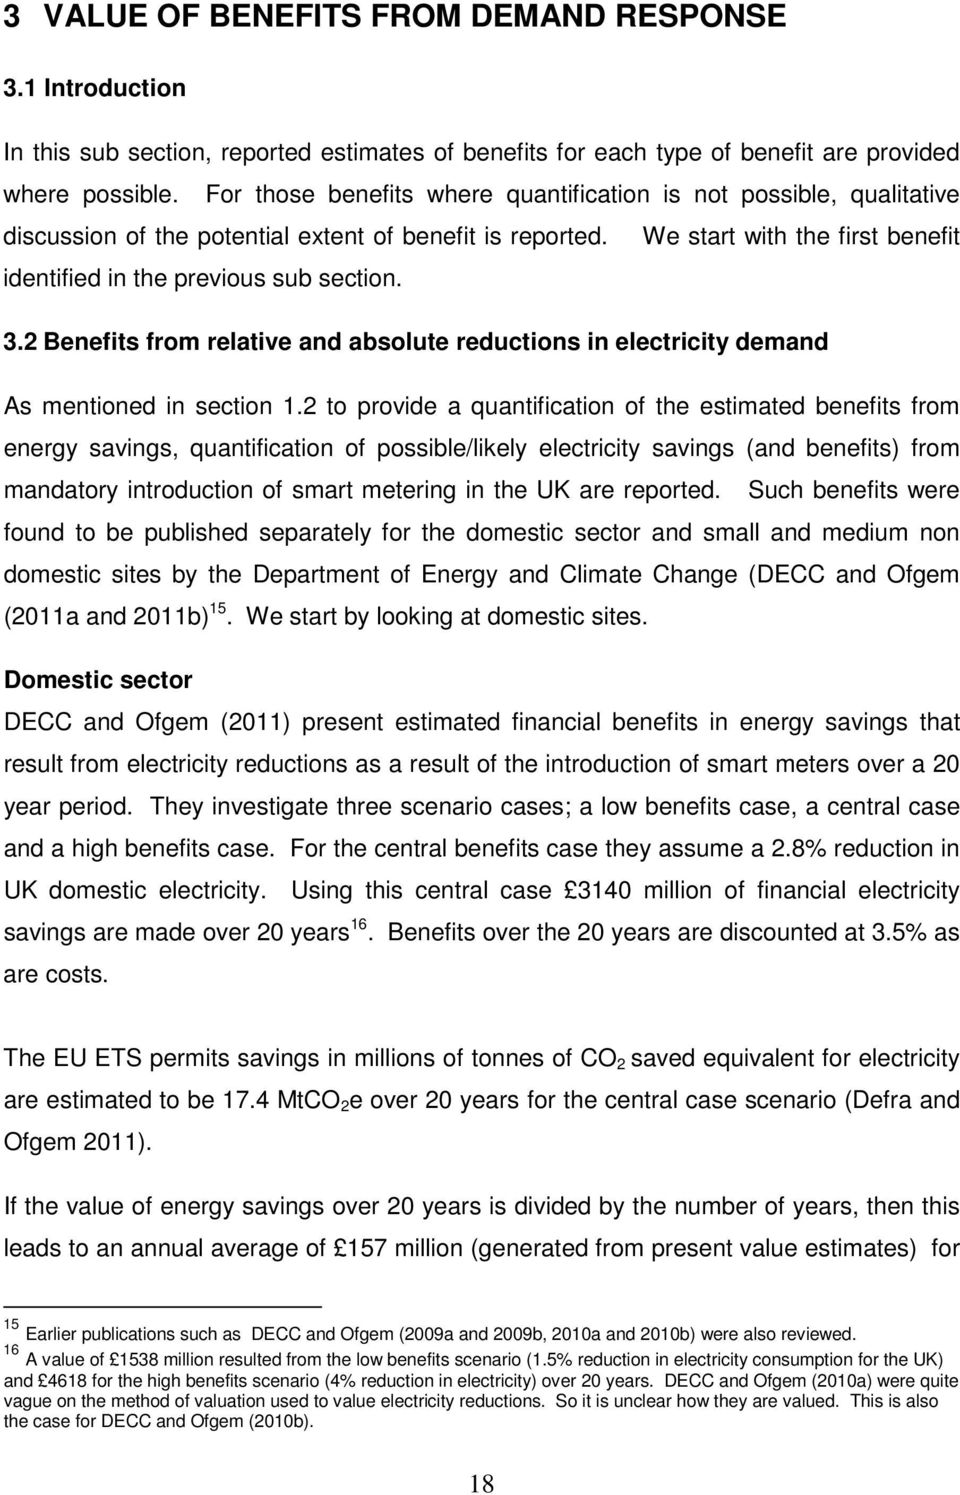 3.2 Benefits from relative and absolute reductions in electricity demand As mentioned in section 1.